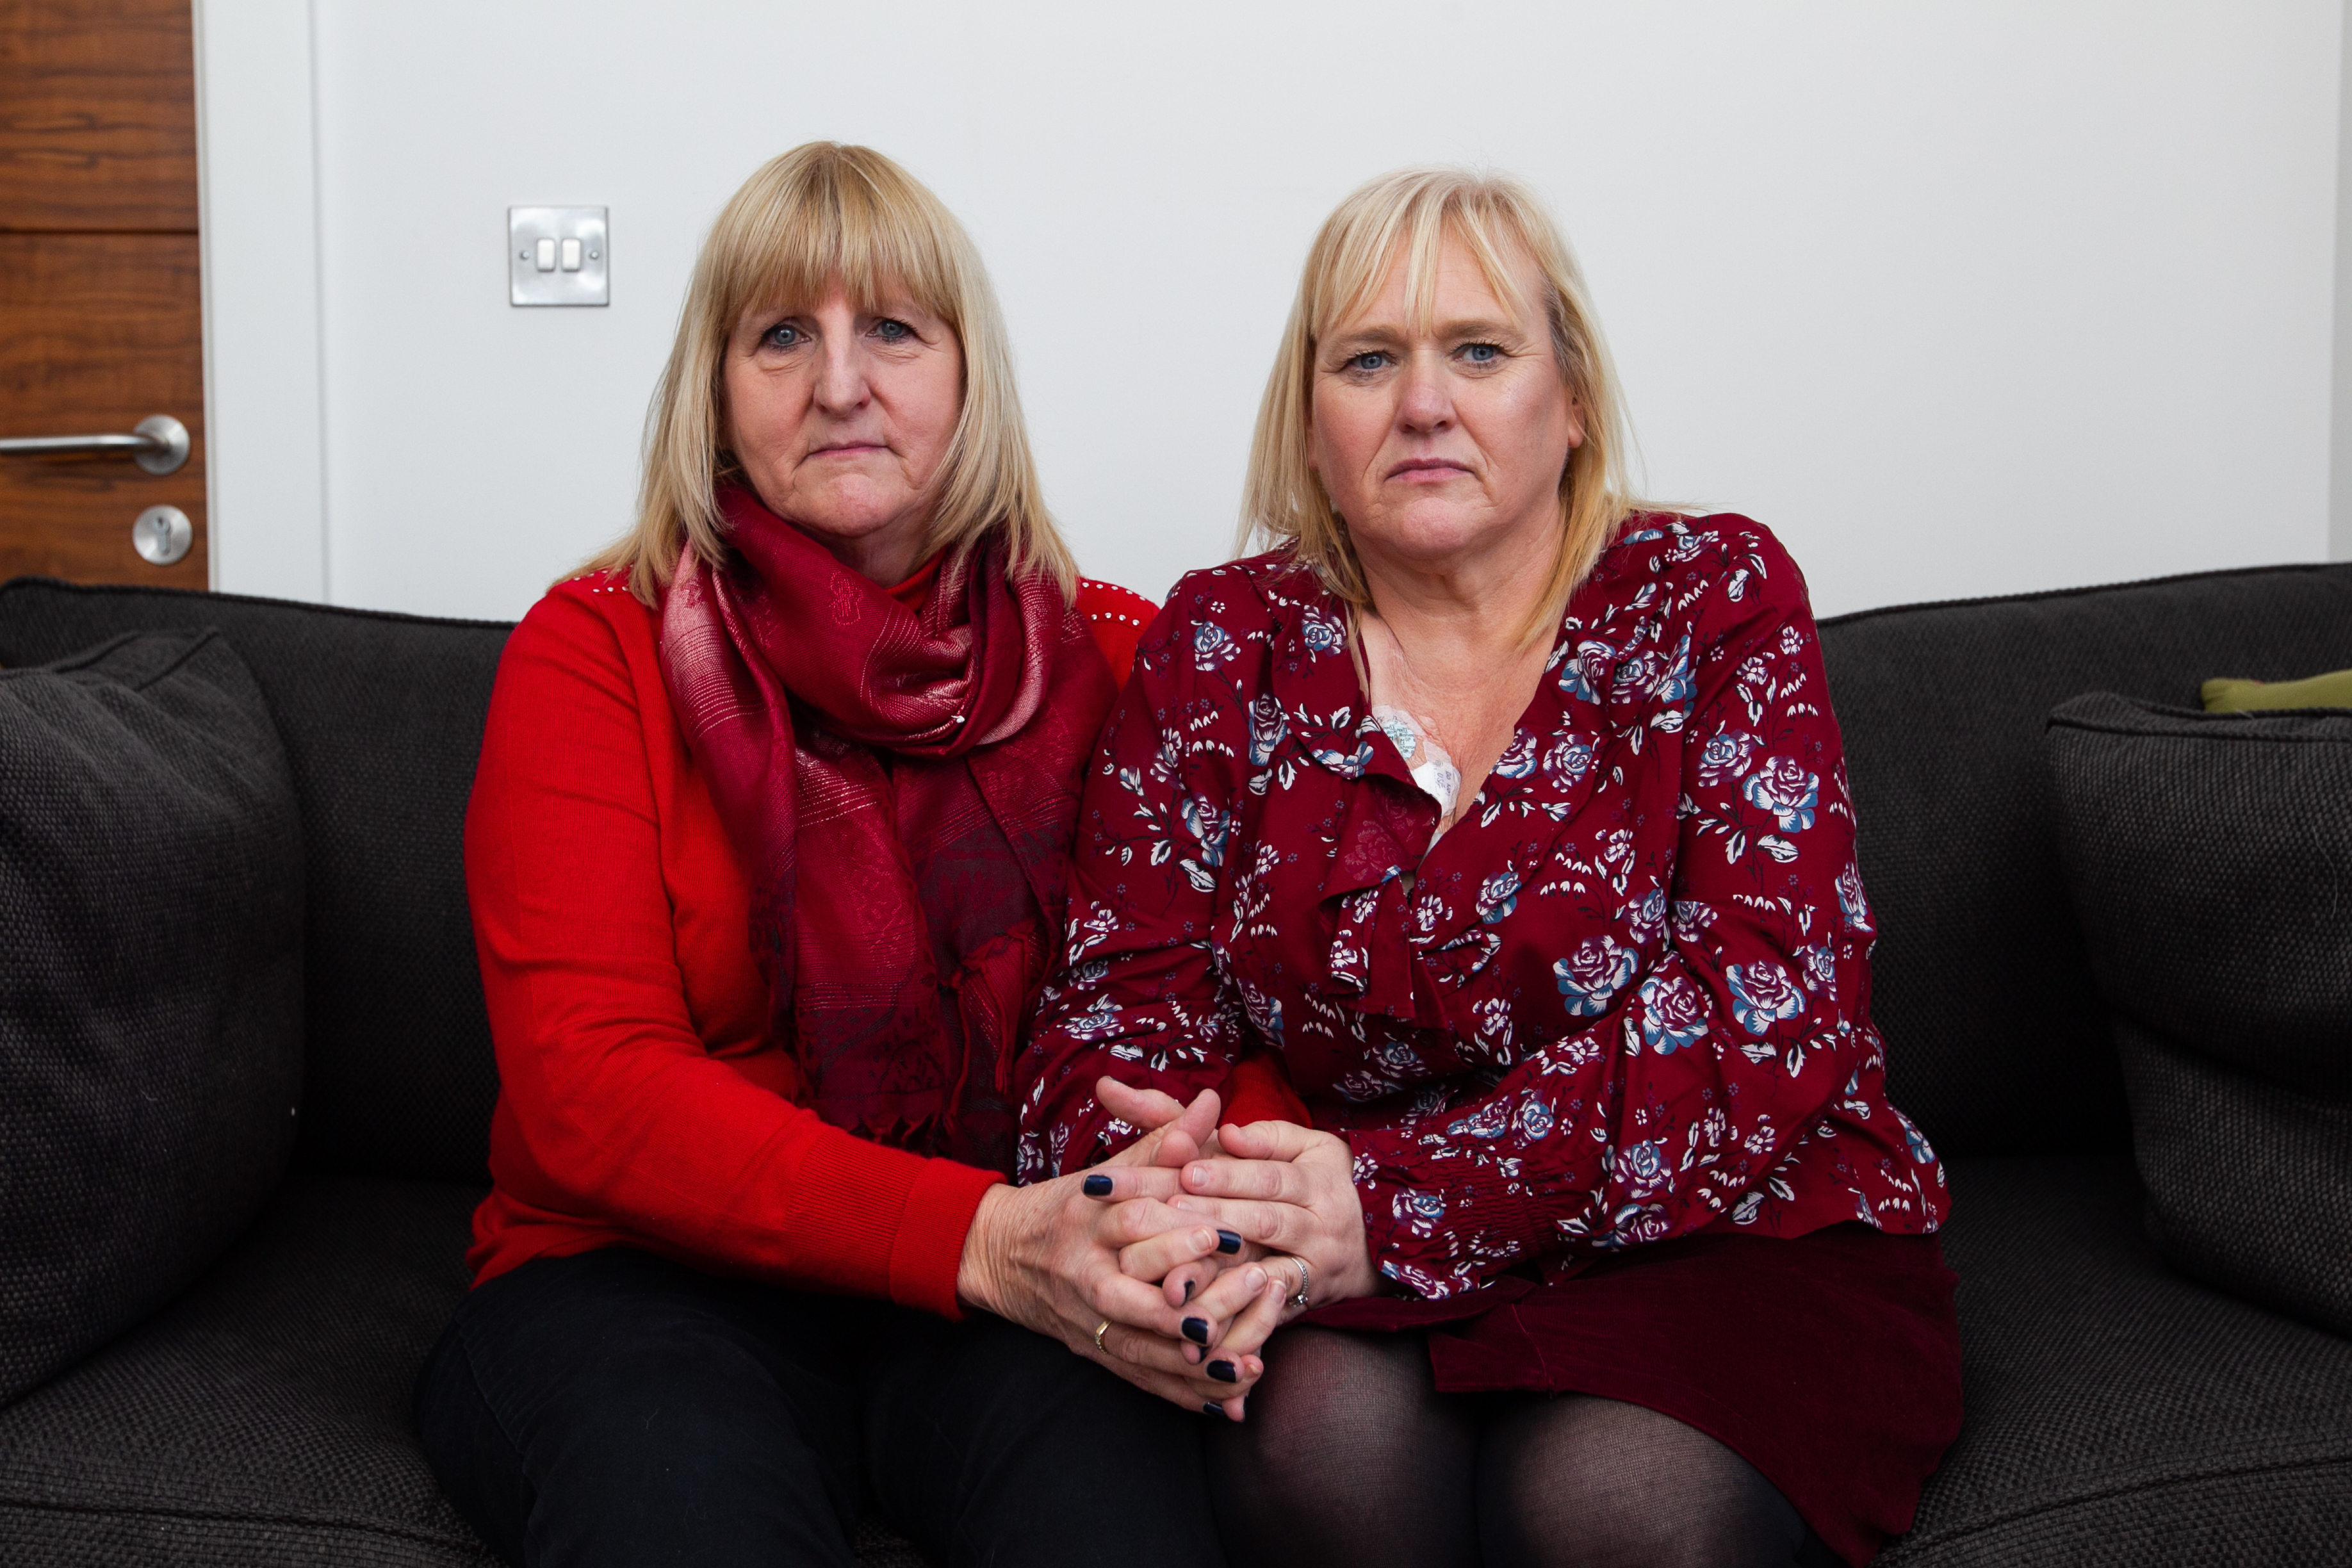 Judith Tyreman and Pauline Hunt meeting for the first time. Judith is the widow of Tom Tyreman. Tom and Pauline both recieved organ transplants which gave them cancer, which Tom died from. (Andrew Cawley)